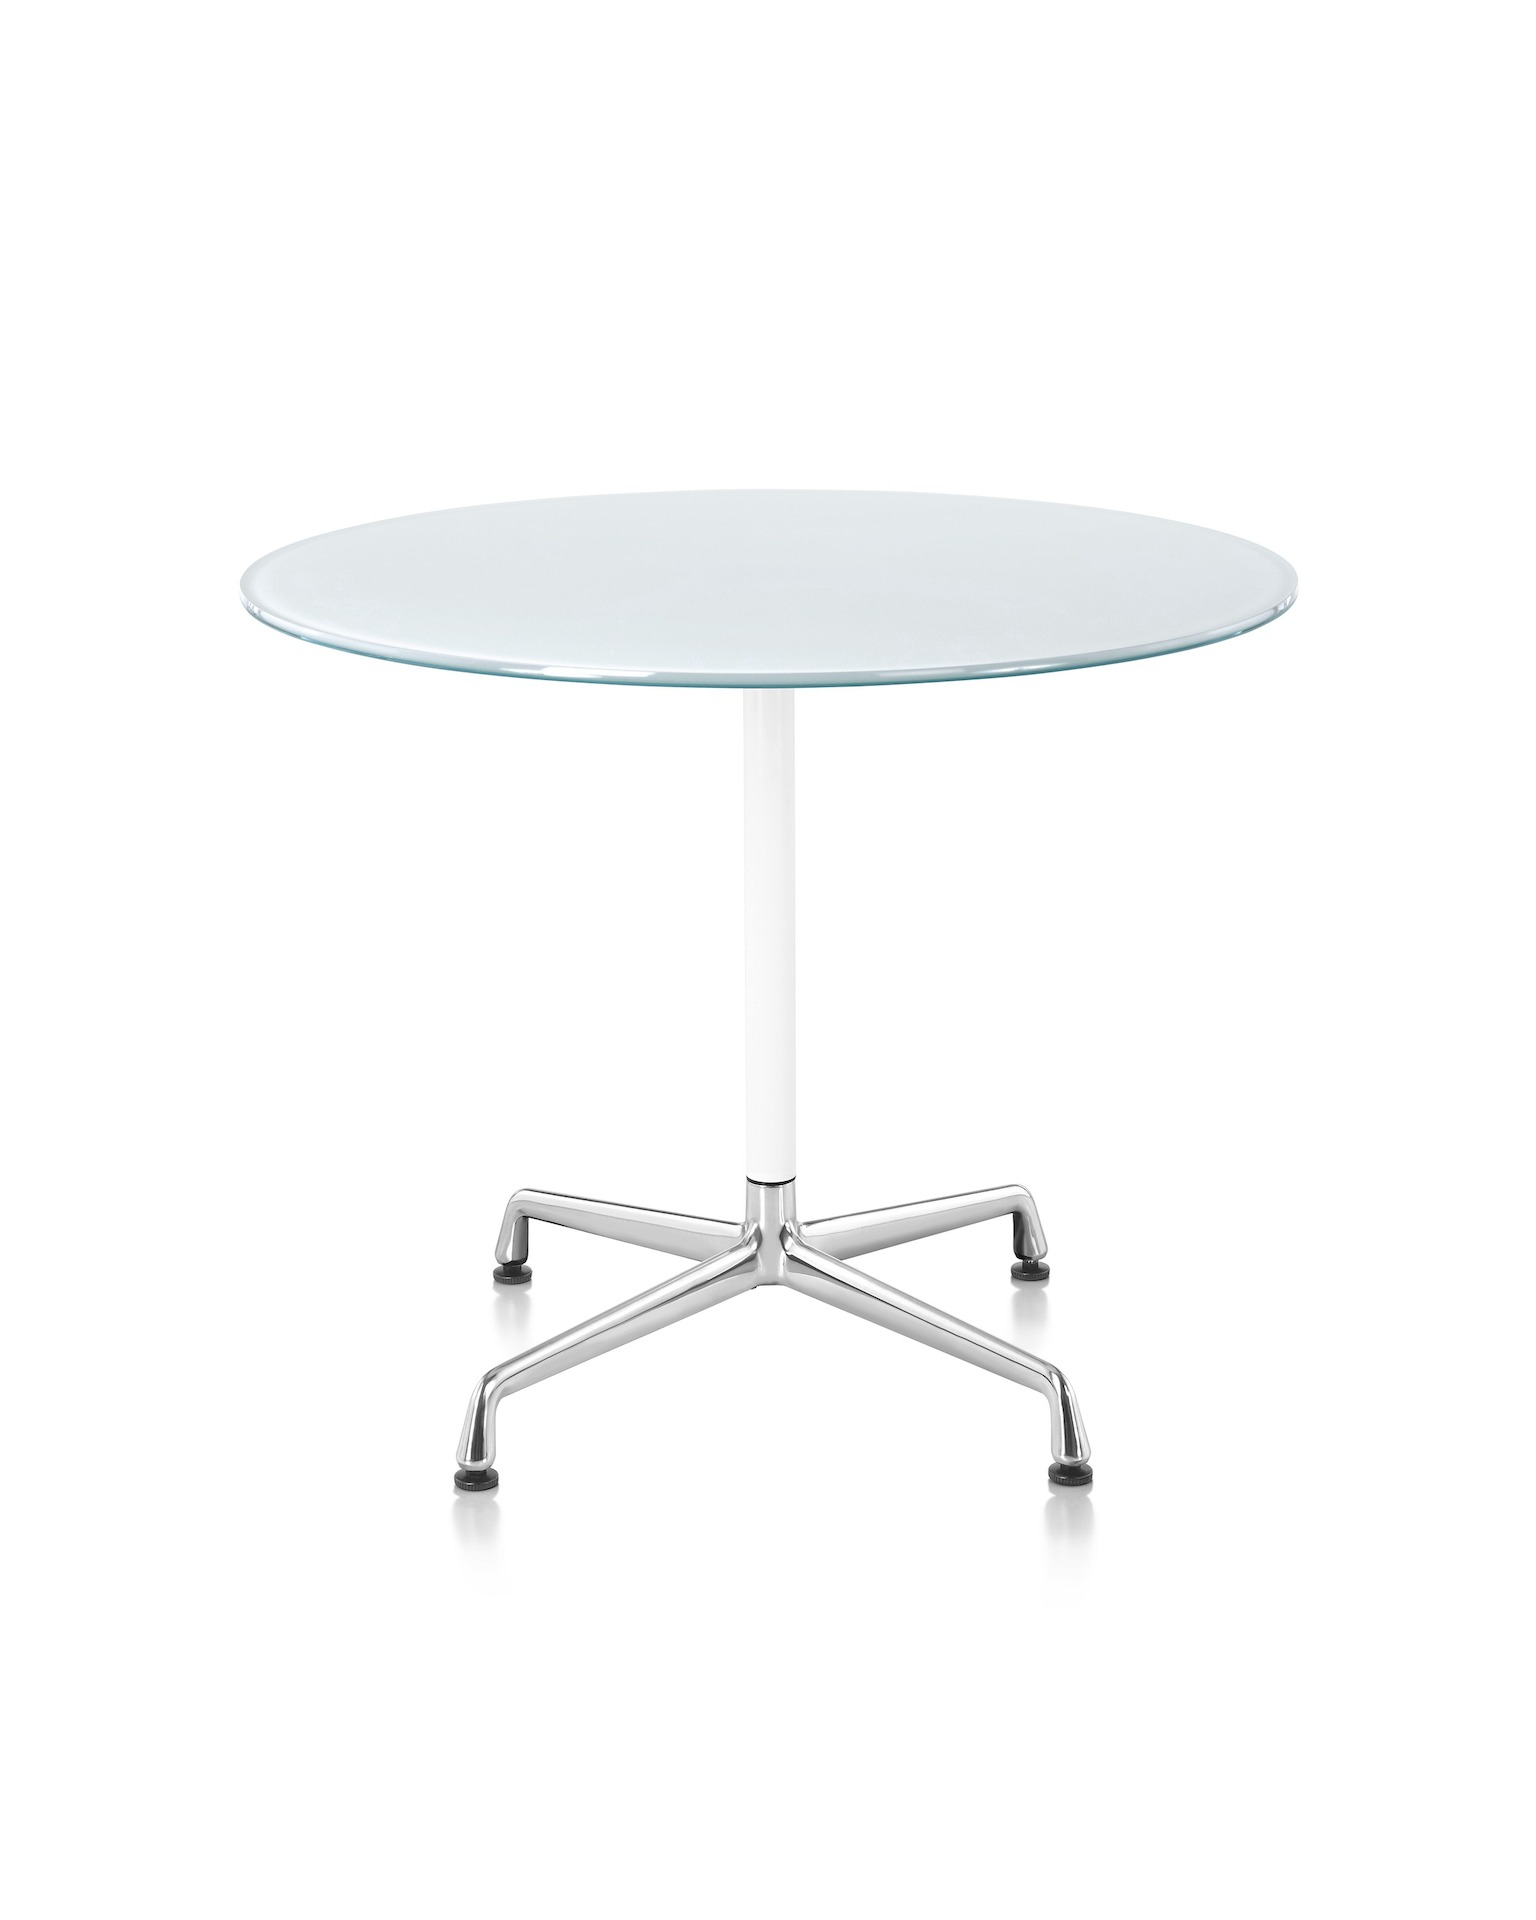 Eames Tisch Eames Round Table Herman Miller Round Table Ideas